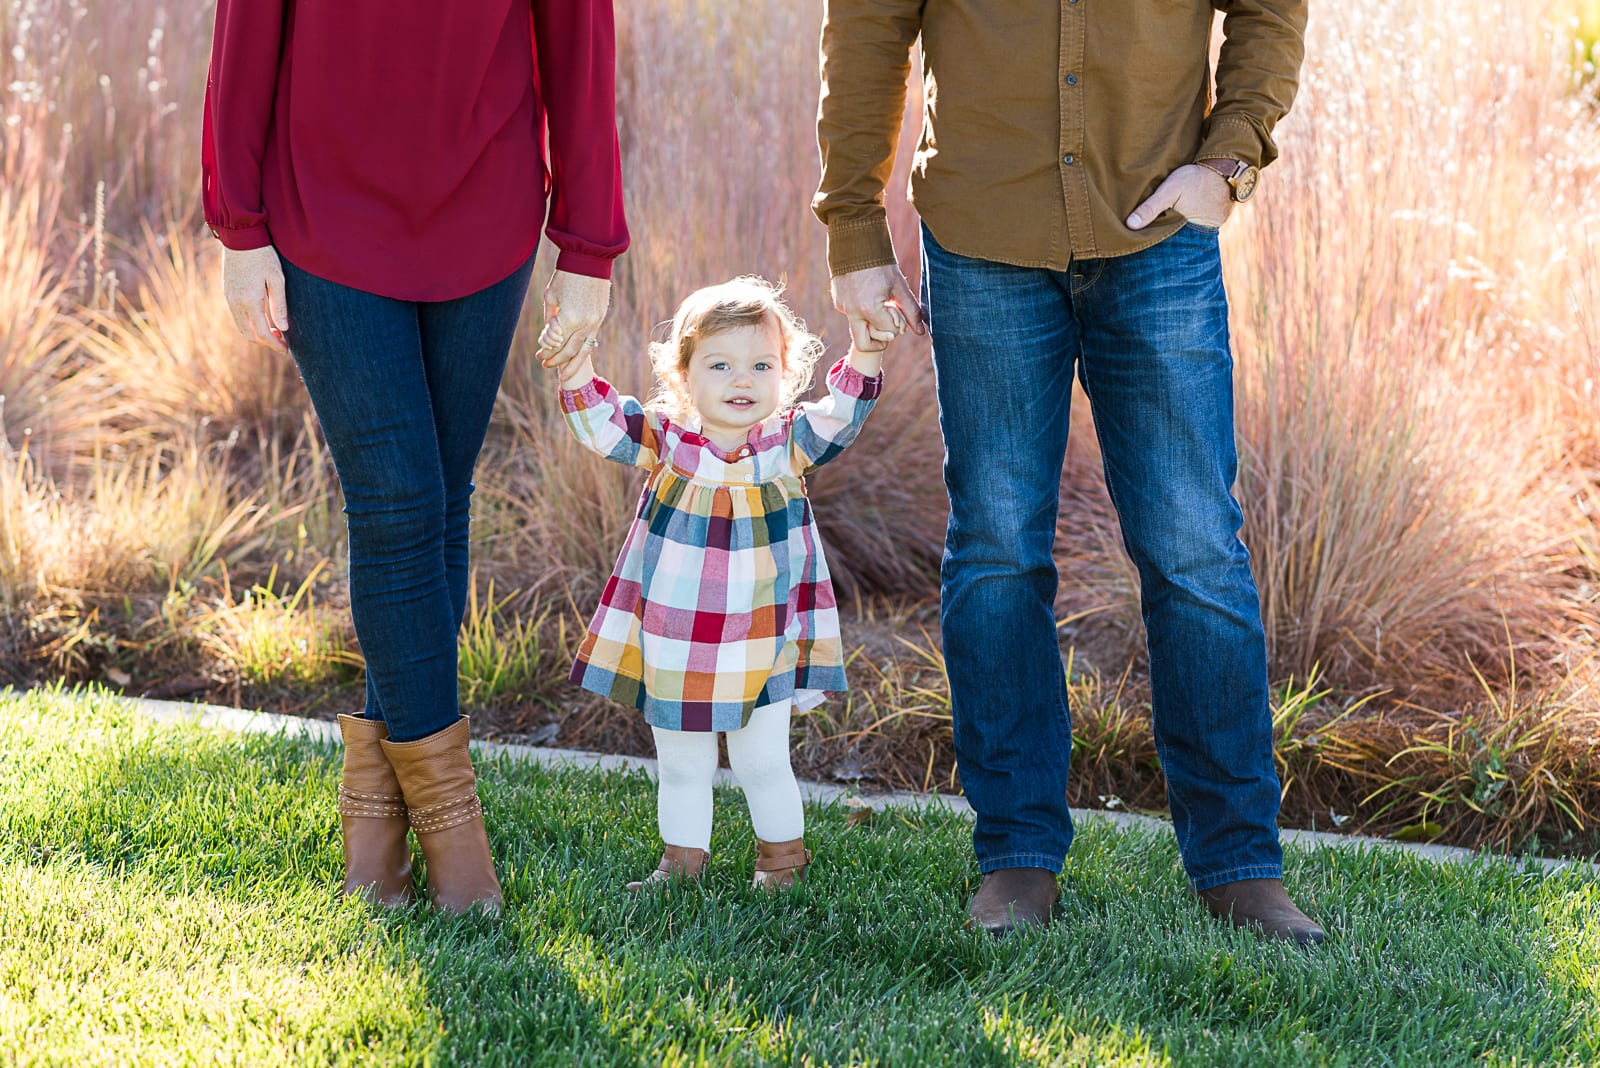 family photo | Family Photography | Westerly Creek Park | From the Hip Photo